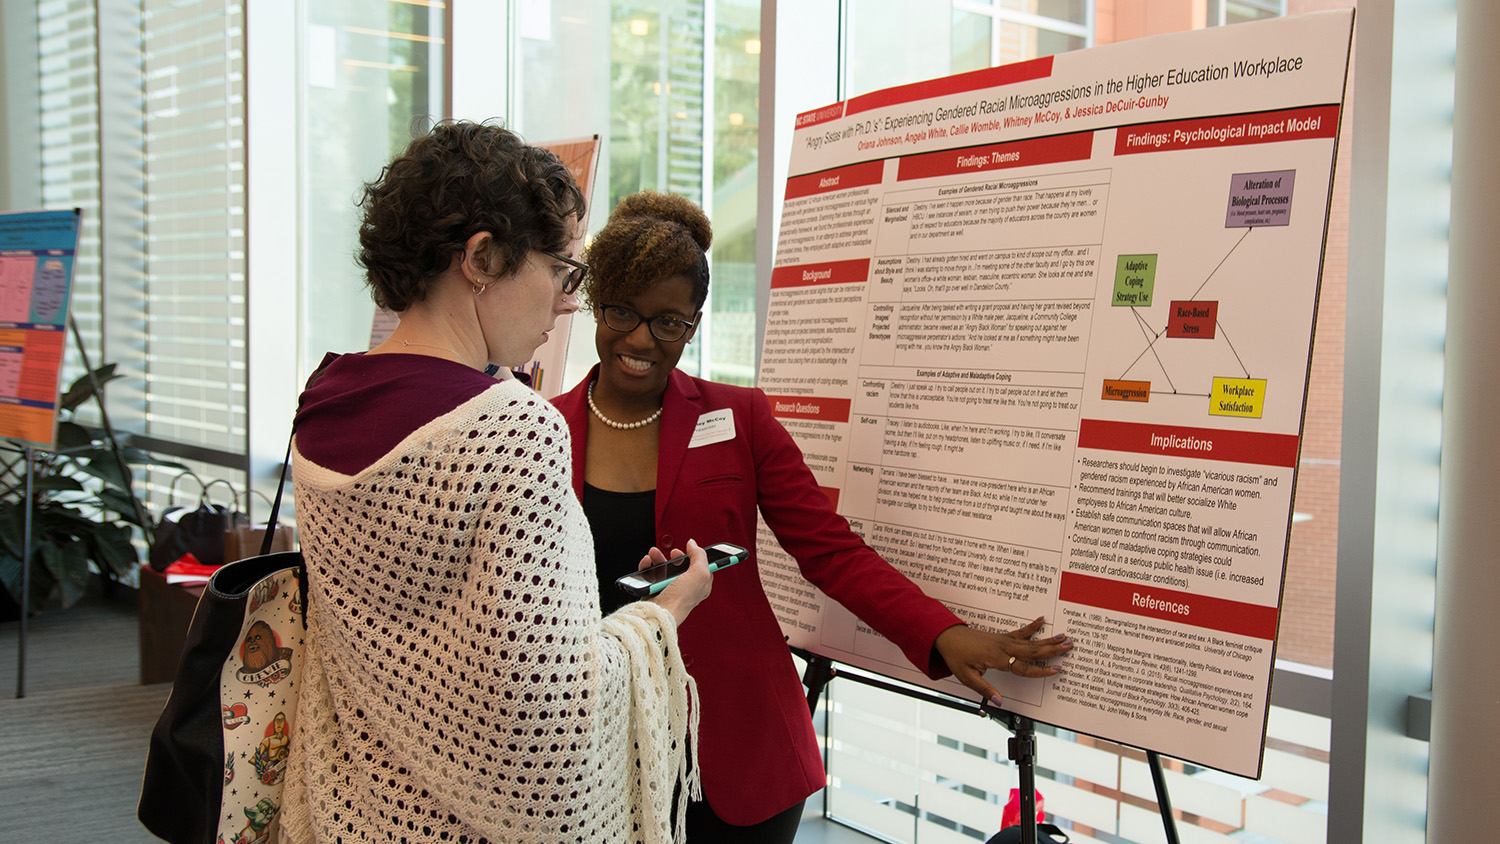 A poster presentation being discussed at the Symposium